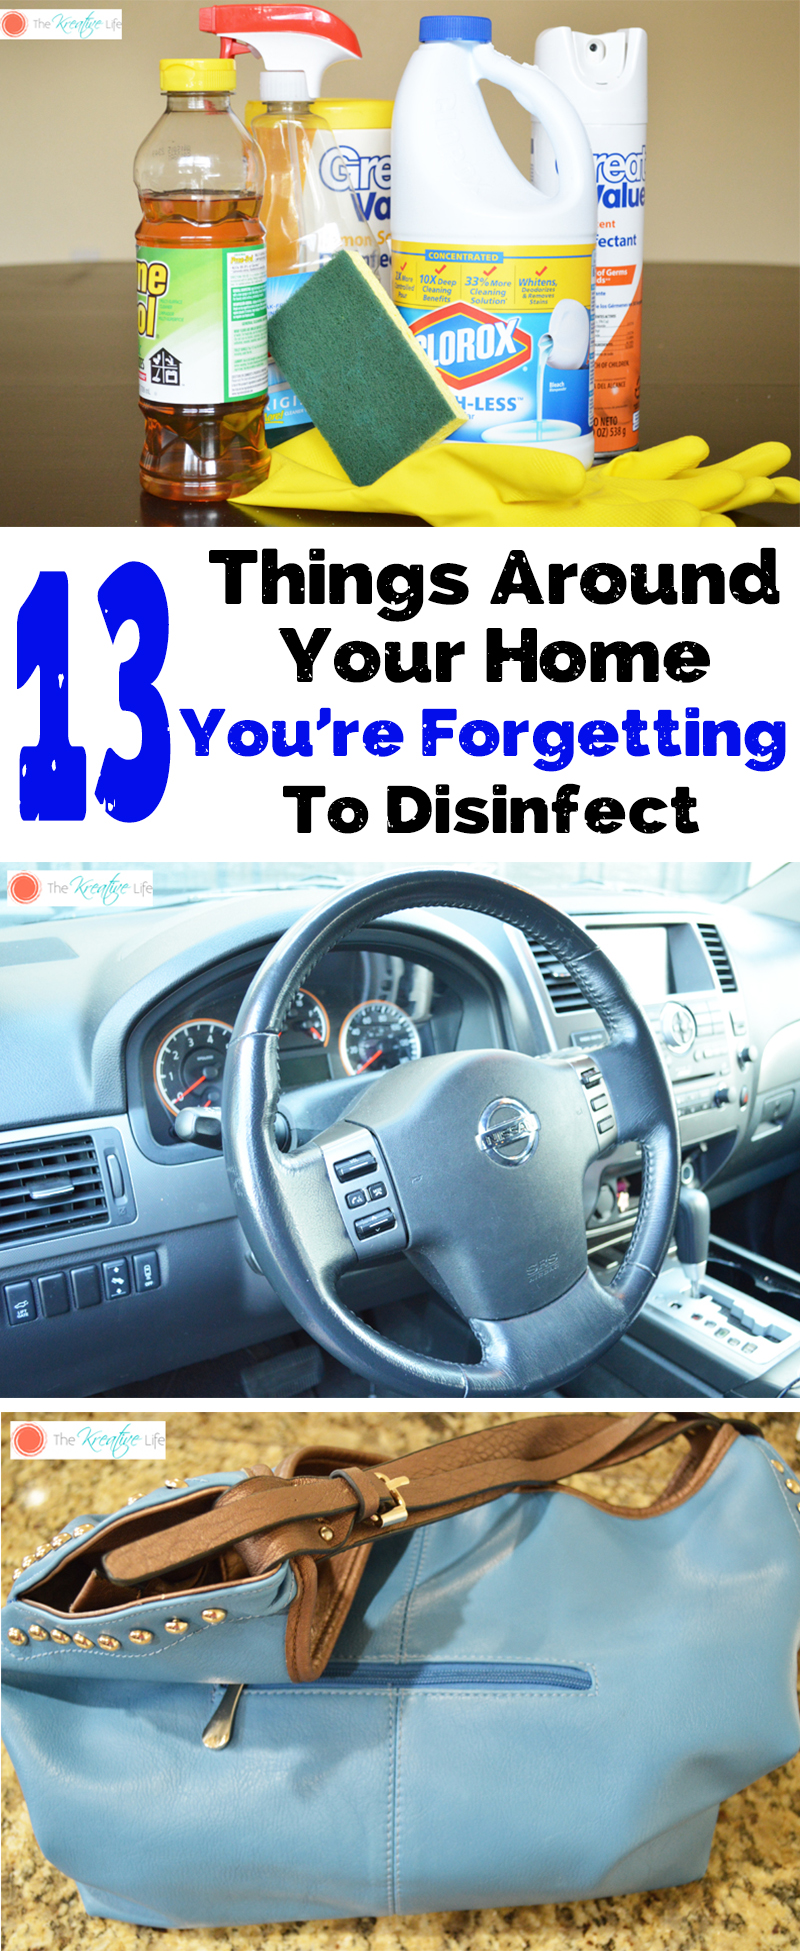 It's always a good idea to disinfect your home after the flu. There are some places that you may be forgetting. These 13 things around your home you should be disinfecting should never be looked over. - The Kreative Life